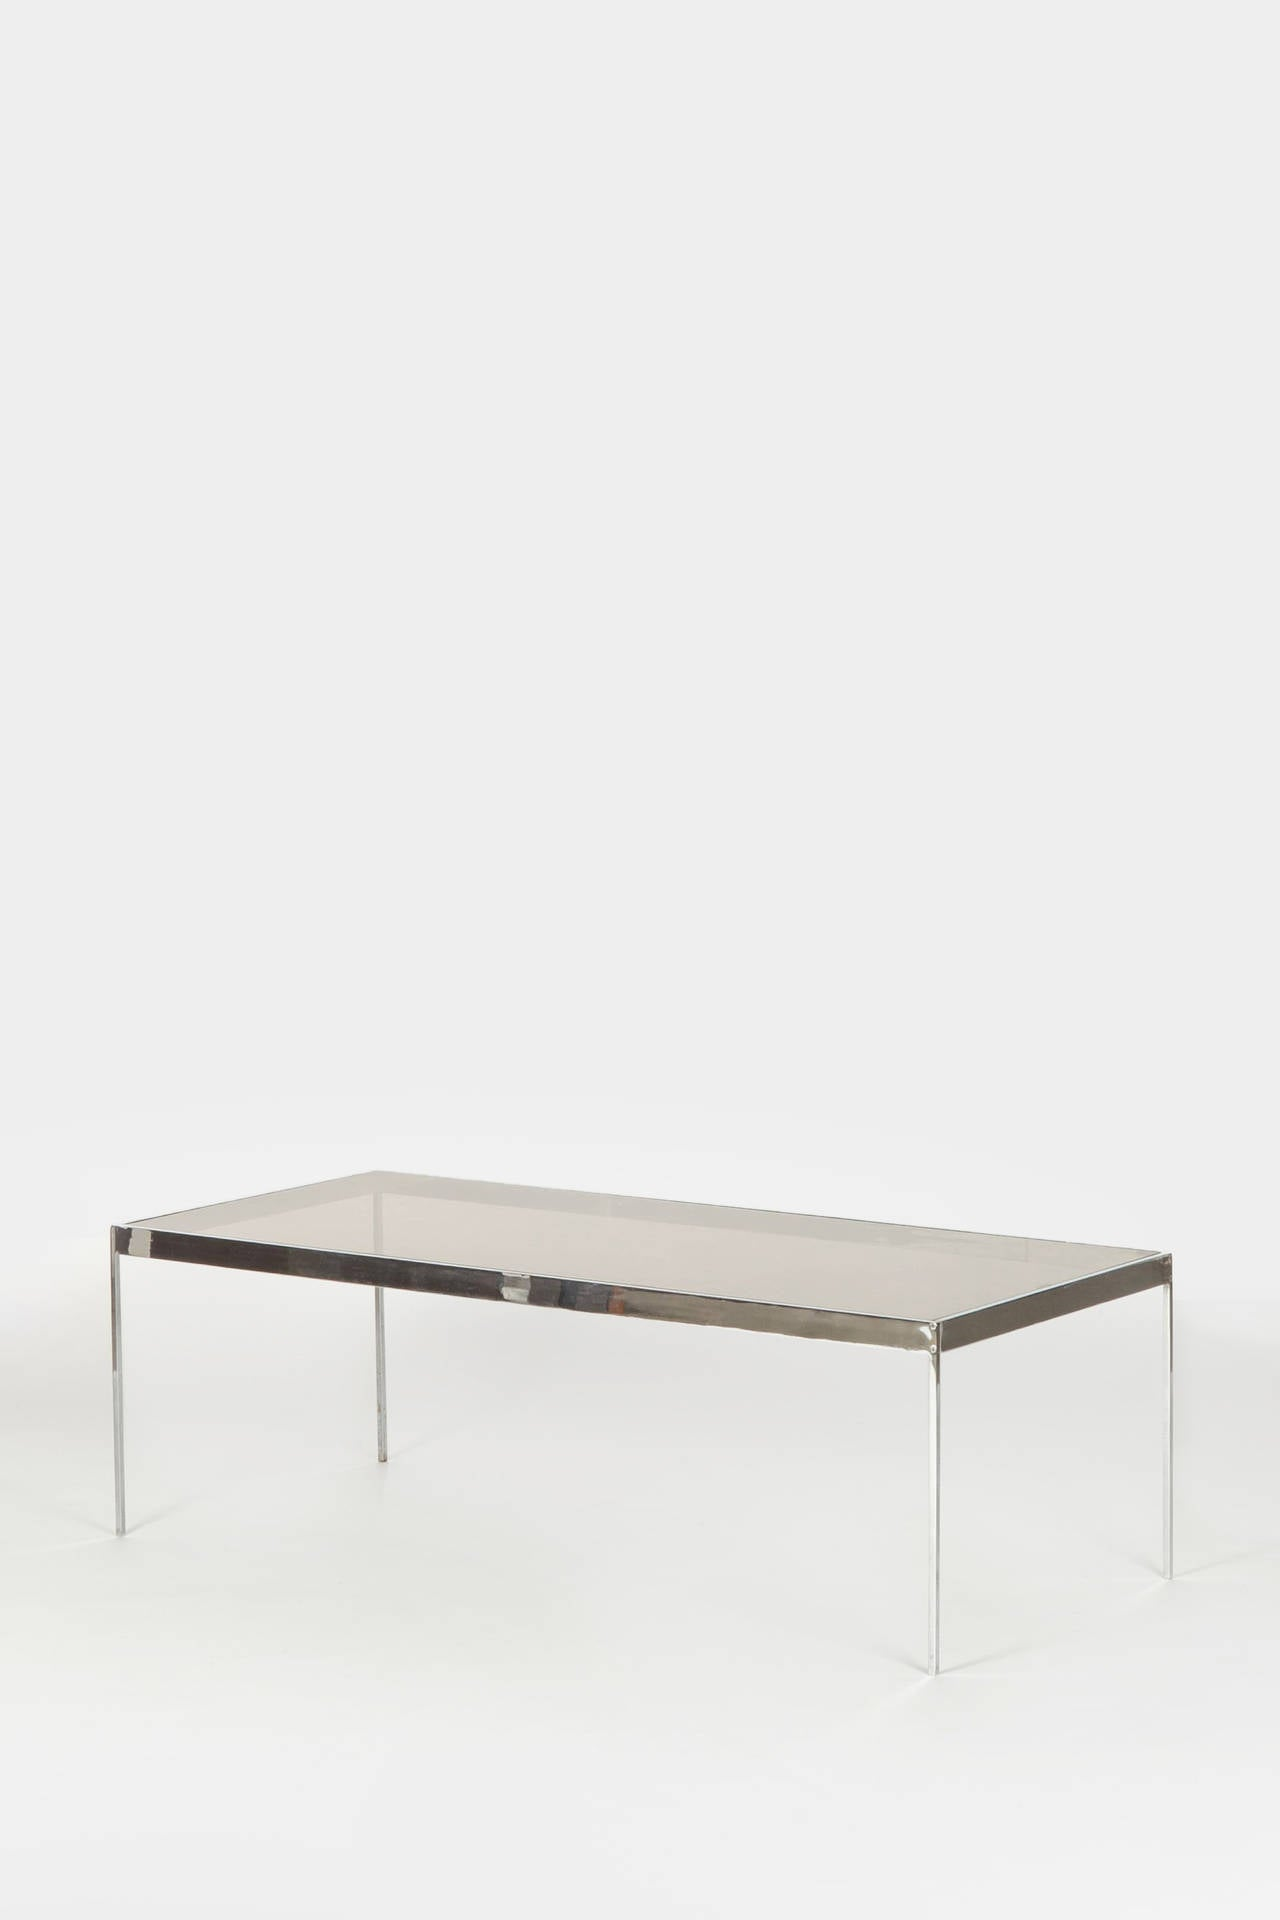 Swiss Glass and Chrome Coffee Table by Dieter Waeckerlin at 1stdibs